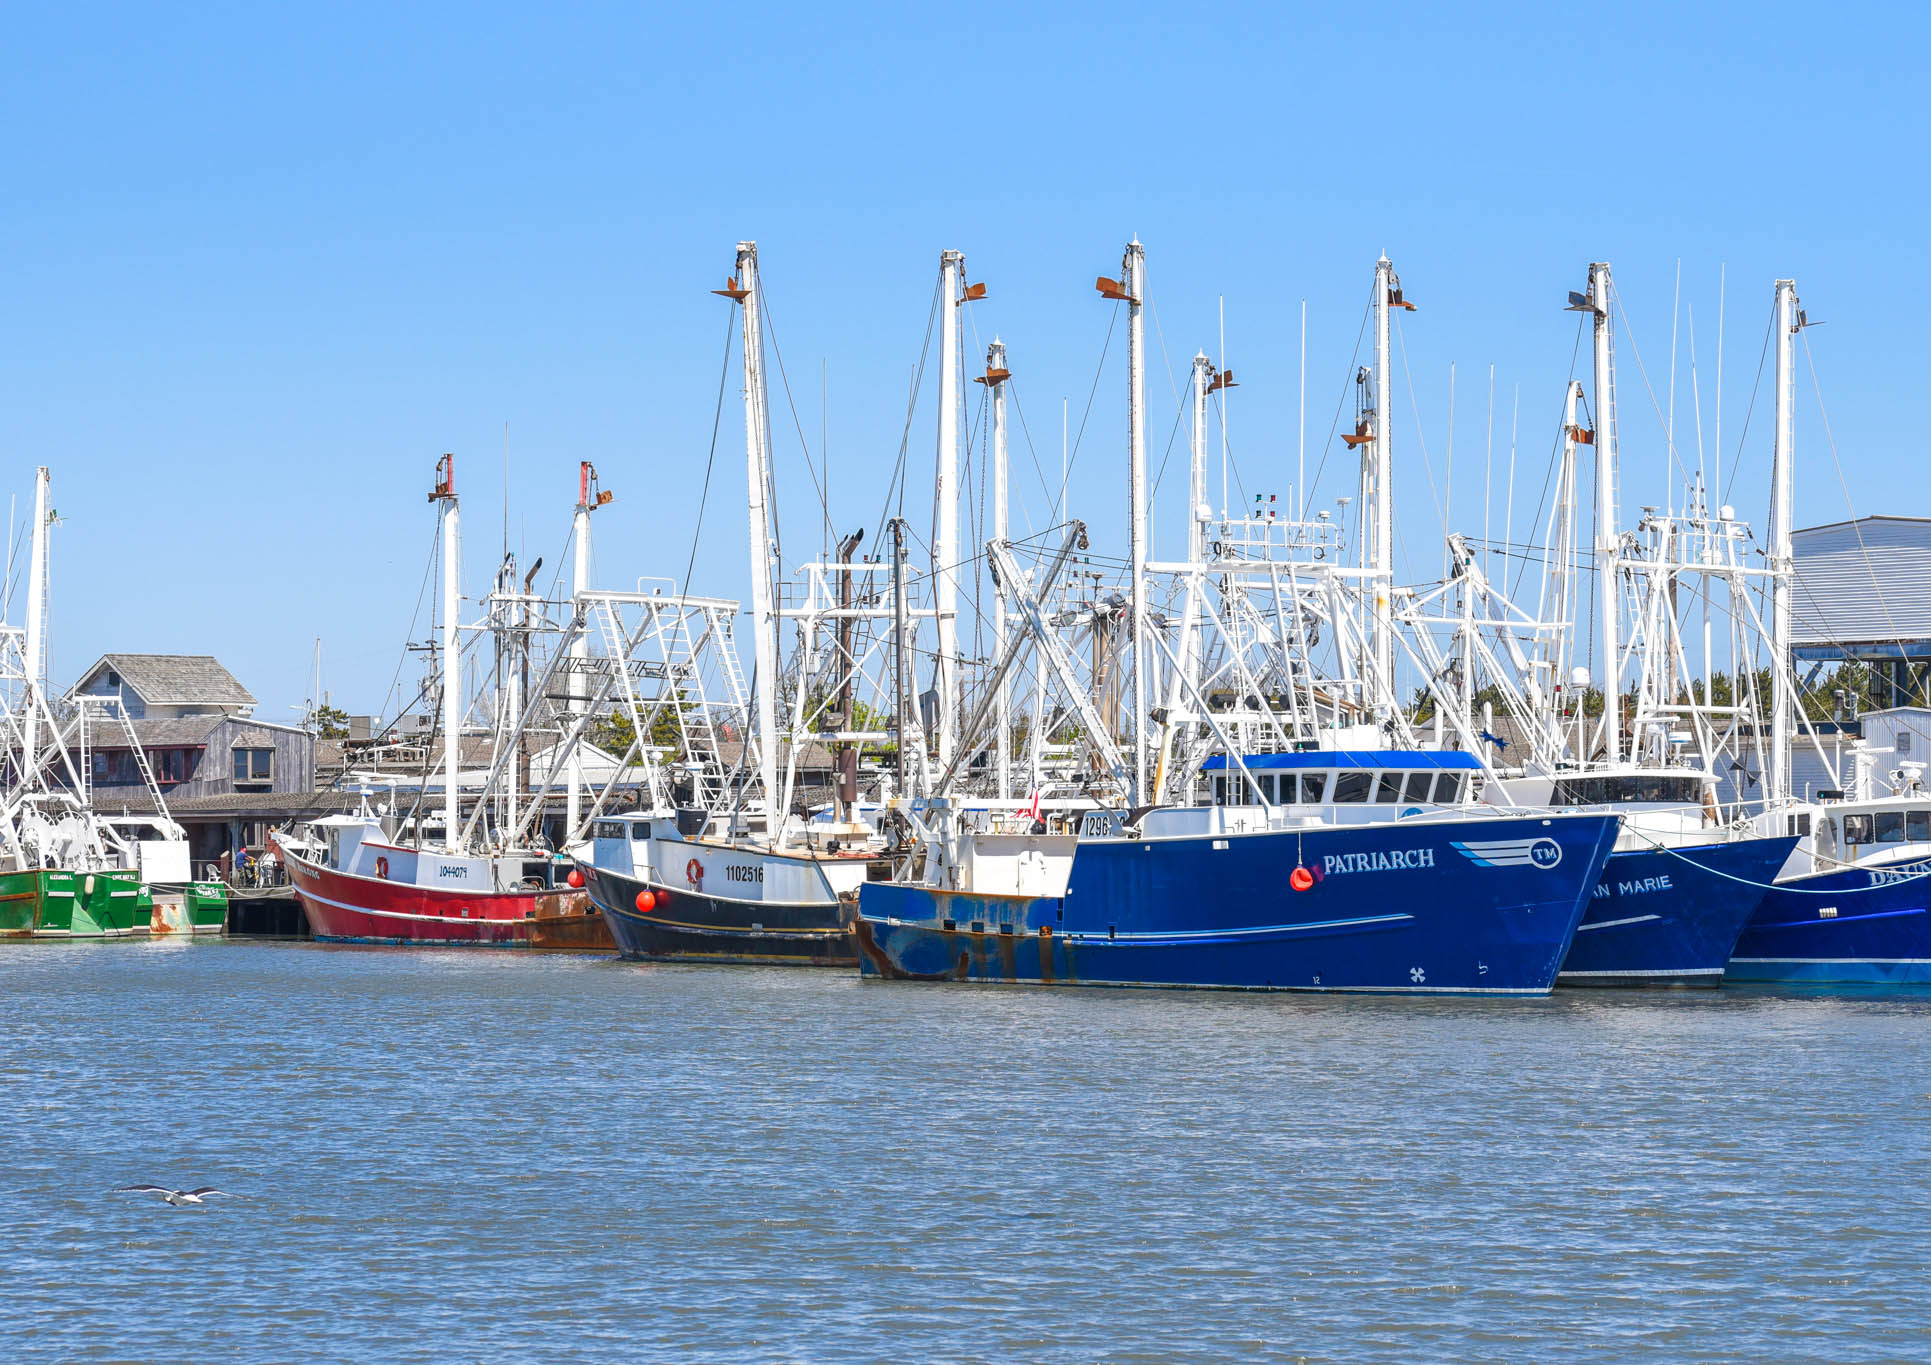 Looking over the Cape May Harbor at the commercial Fishing Boats